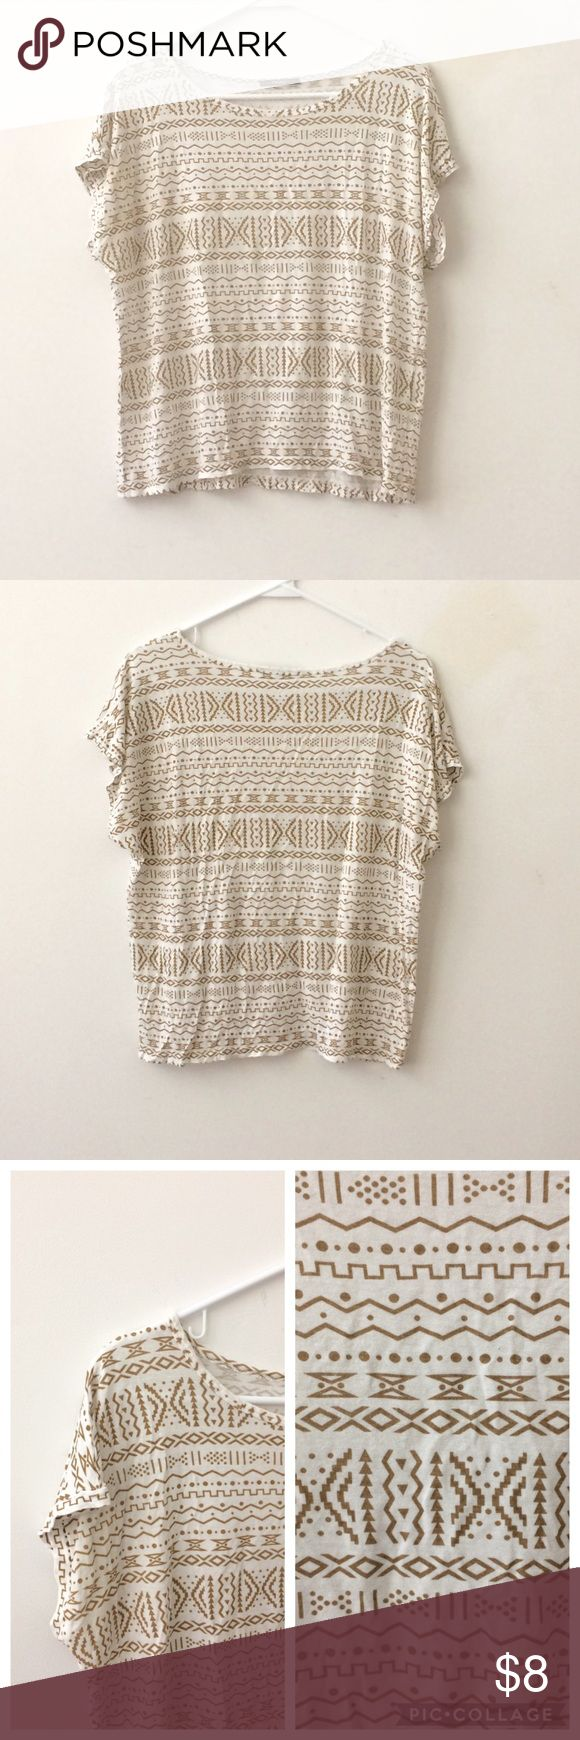 "🌺NEW LISTING F21 Tribal Top - White/Cream🌺 Forever 21 tribal top in white & cream. The tag w/size is no longer on the top but it's a small w/boxy, lose fit. Approximate measurements are 40"" bust & 22.5"" length. In fair to good condition. Thank you for browsing! Forever 21 Tops"